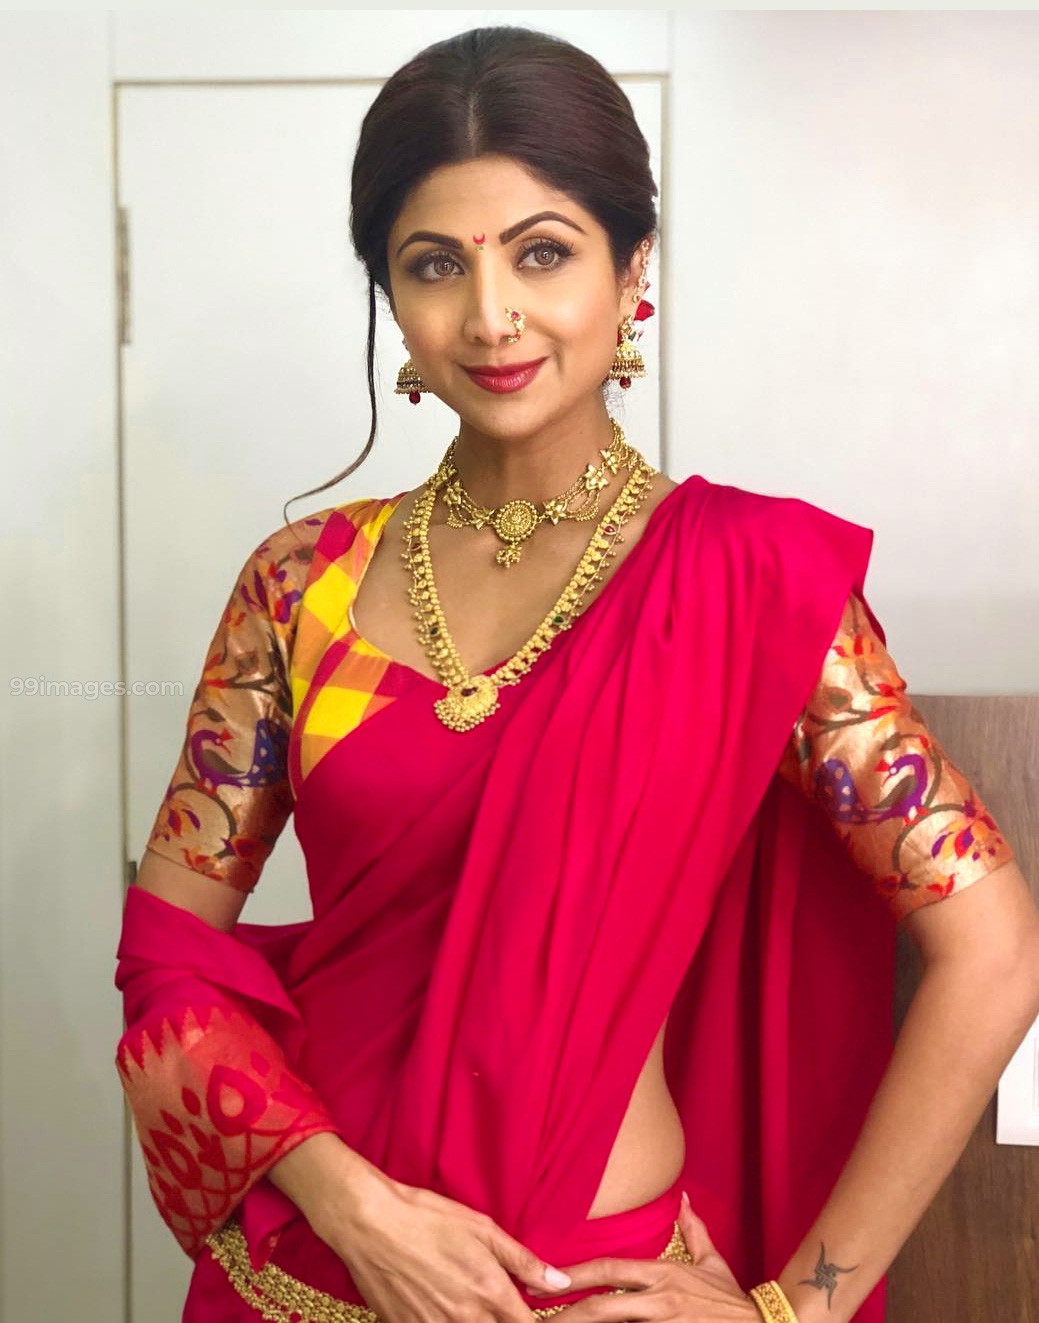 SHILPA SHETTY OLD IMAGES WALLPAPER FREE DOWNLOAD